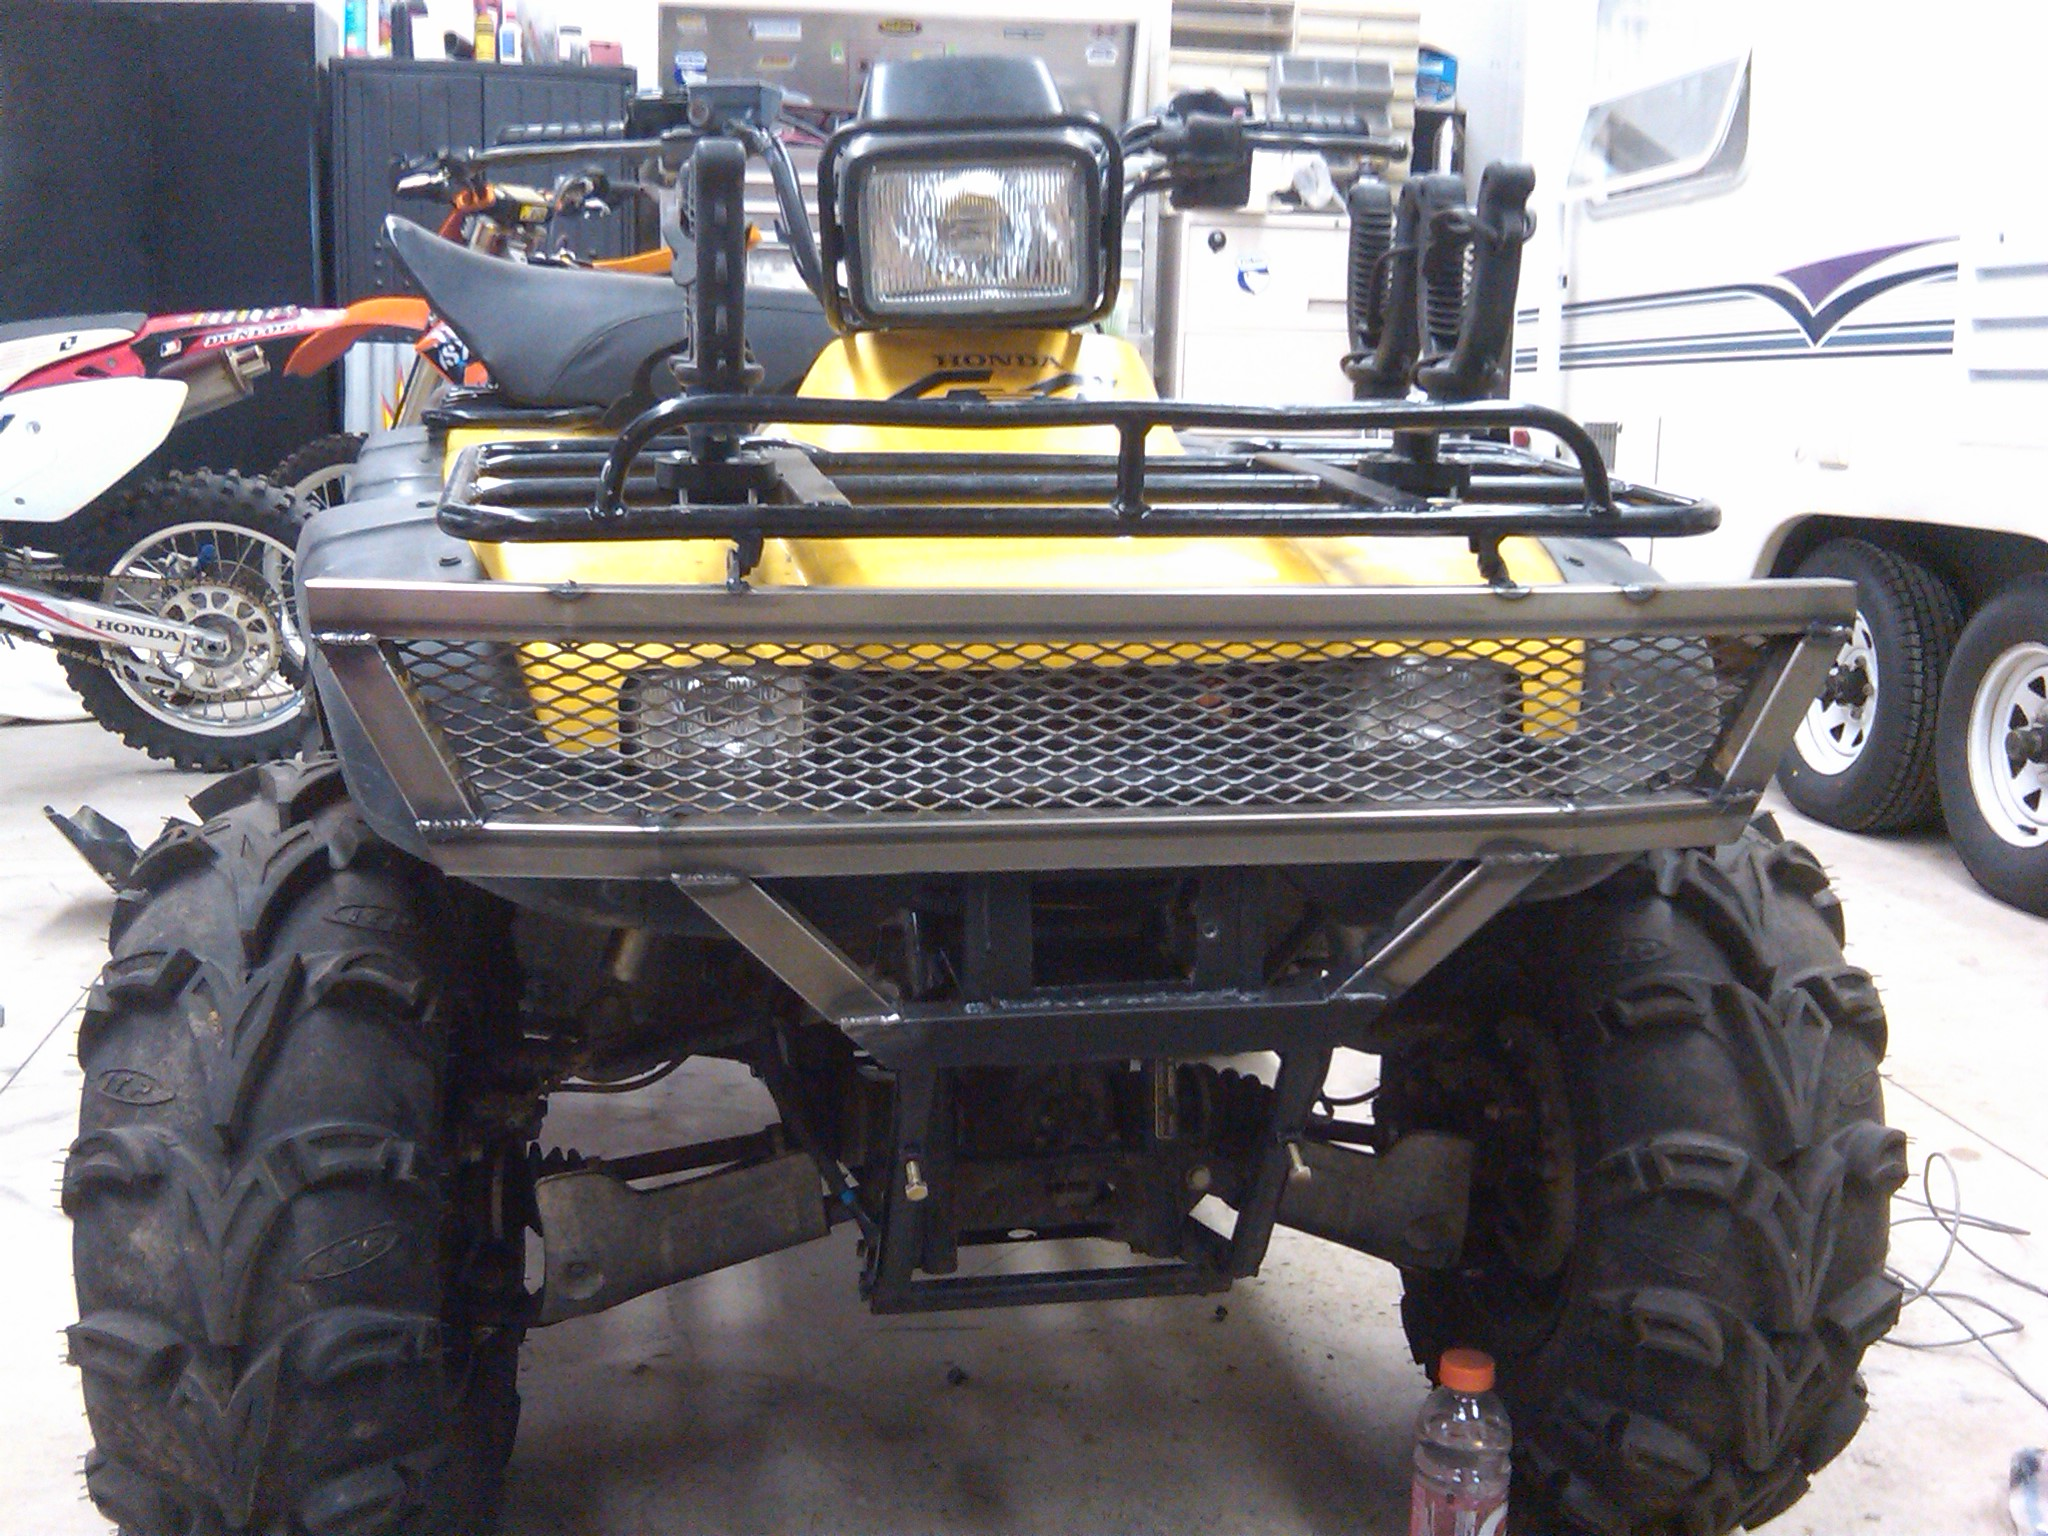 maximum best side foreman canada efficiency atv by quading dealers honda